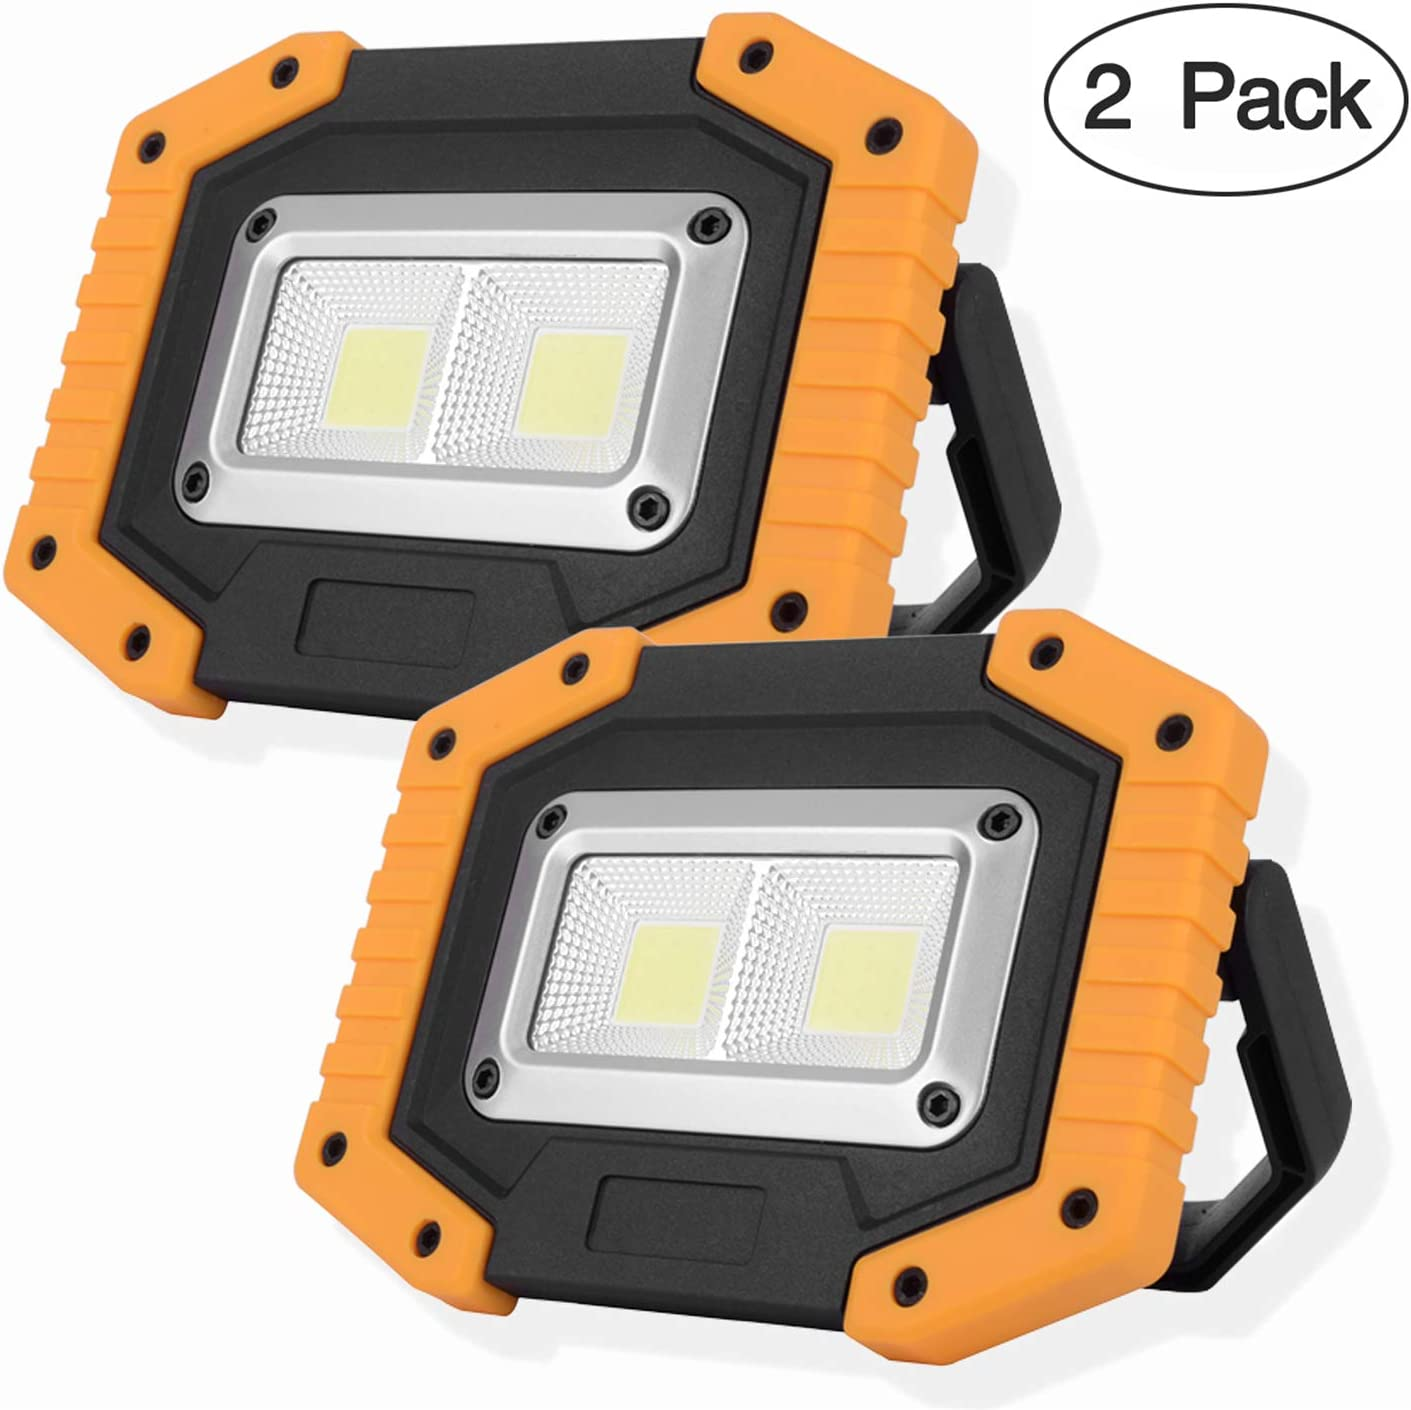 LED flood light Cordless 60W Waterproof camping car charger Outdoor Rechargeable